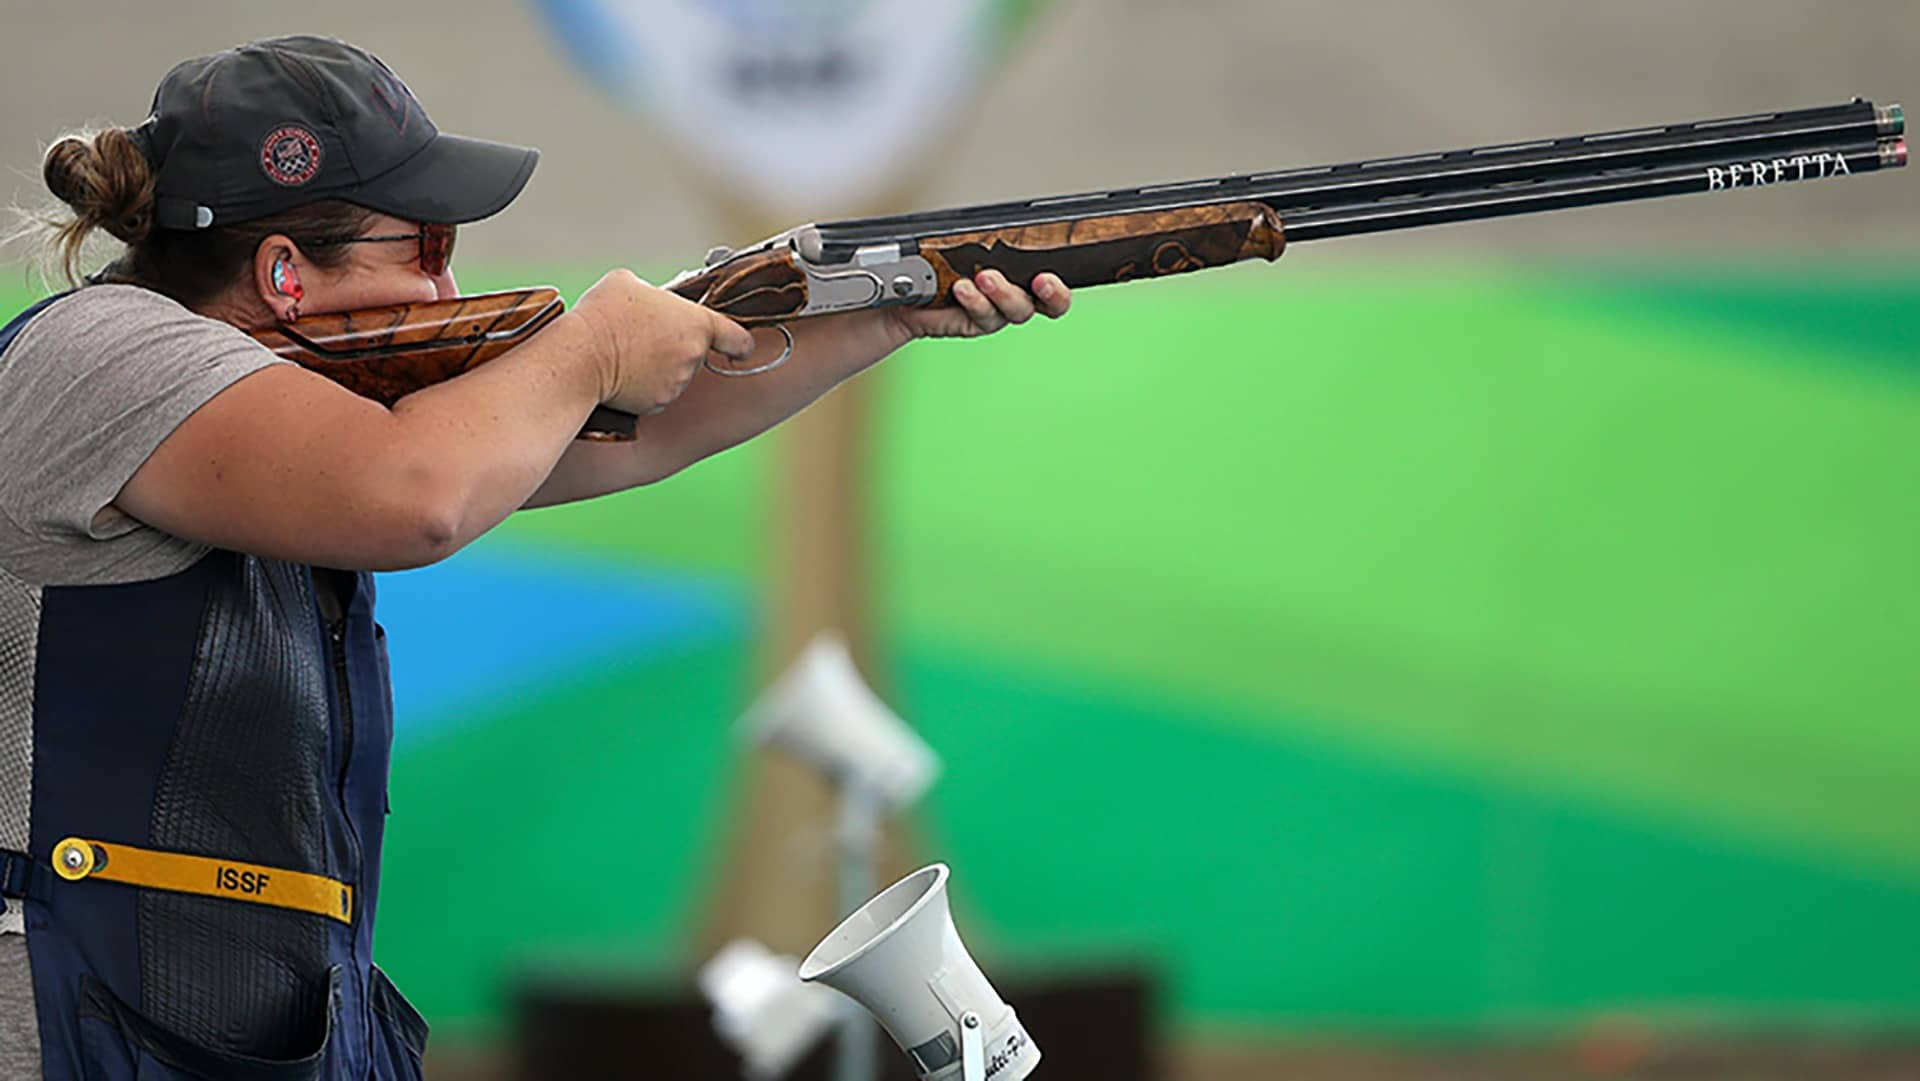 Kim Rhode is focused and takes air at the target